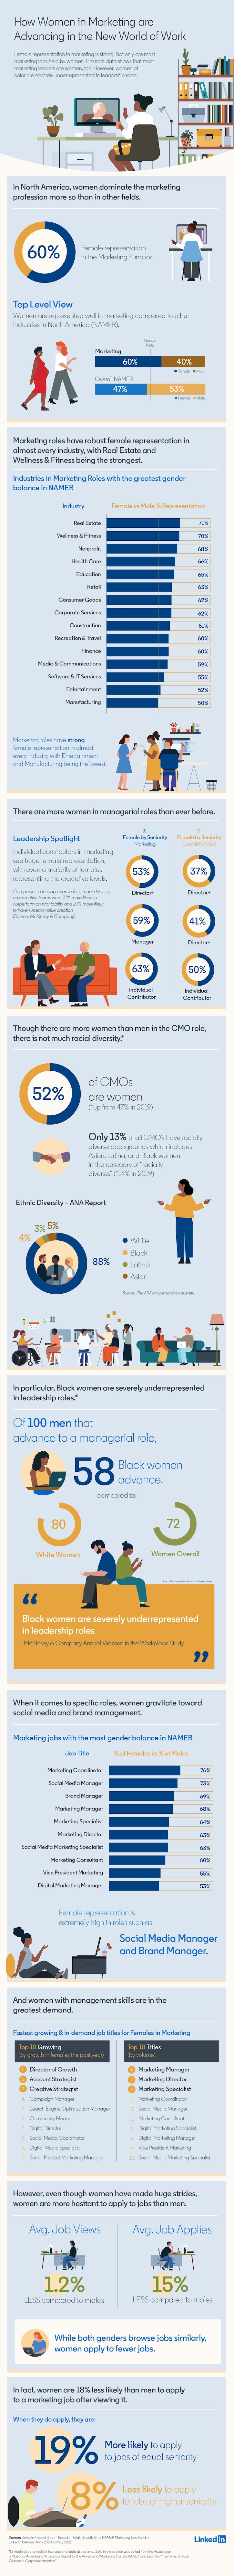 Diversity in marketing infographic